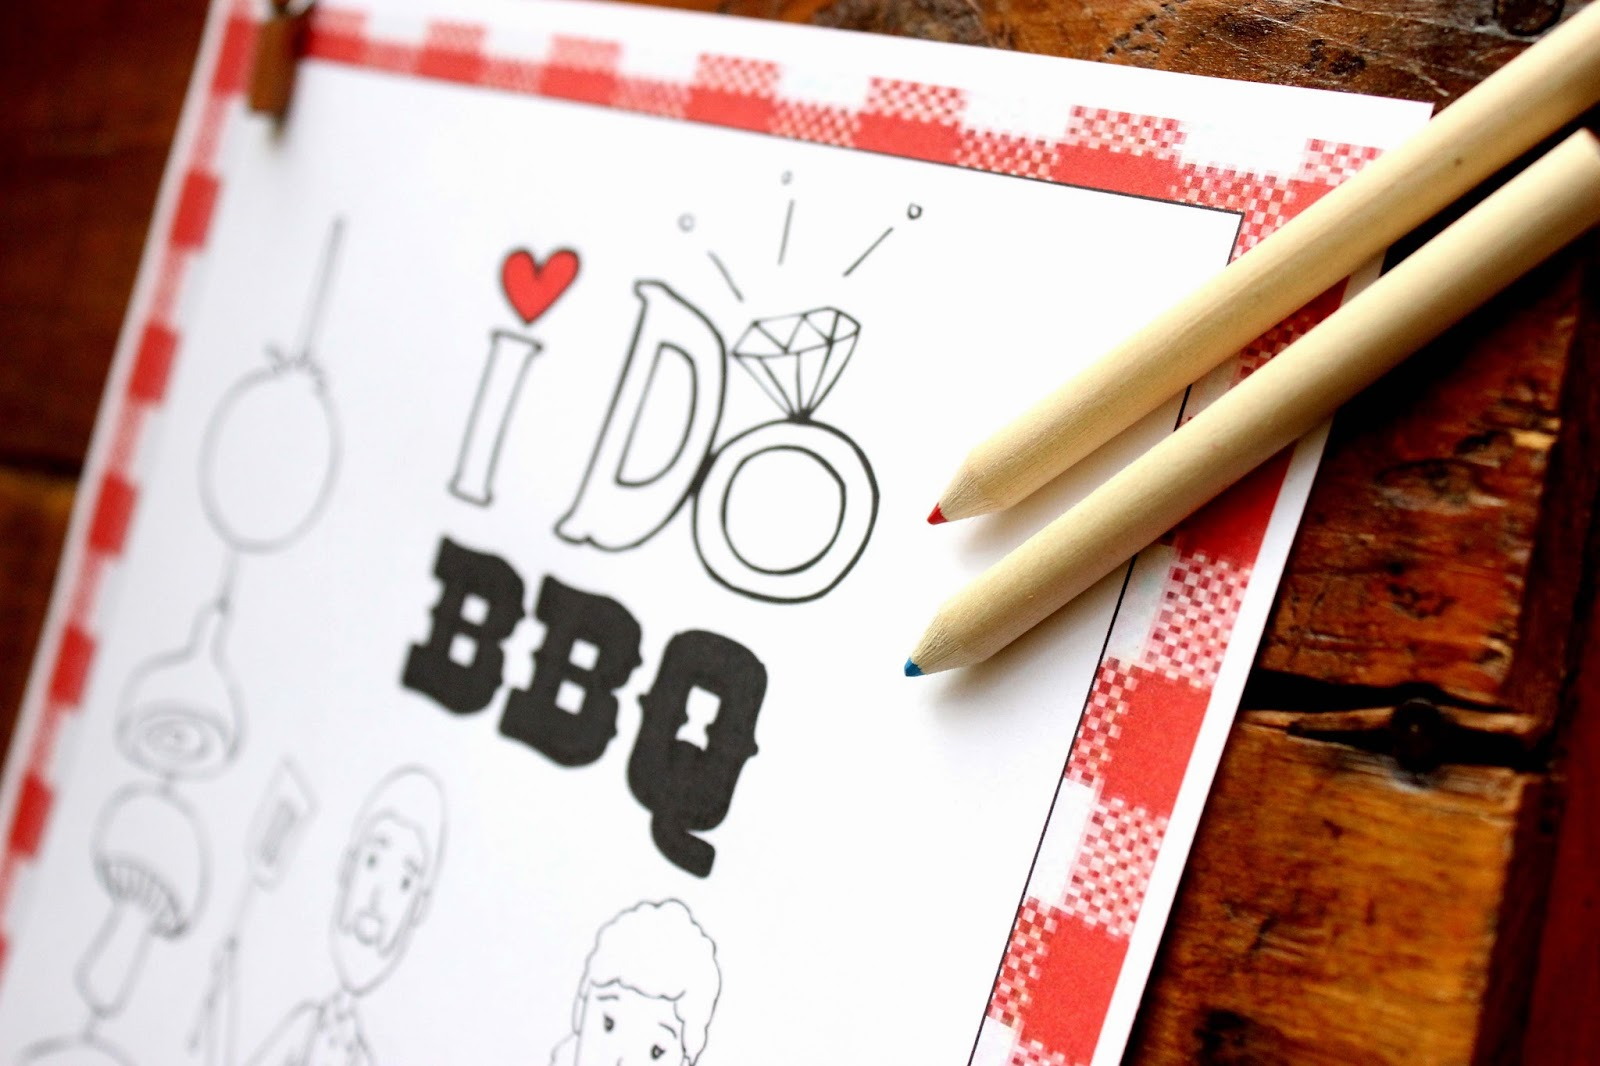 I do BBQ - Wedding Favor - Personalized Coloring book for your ...